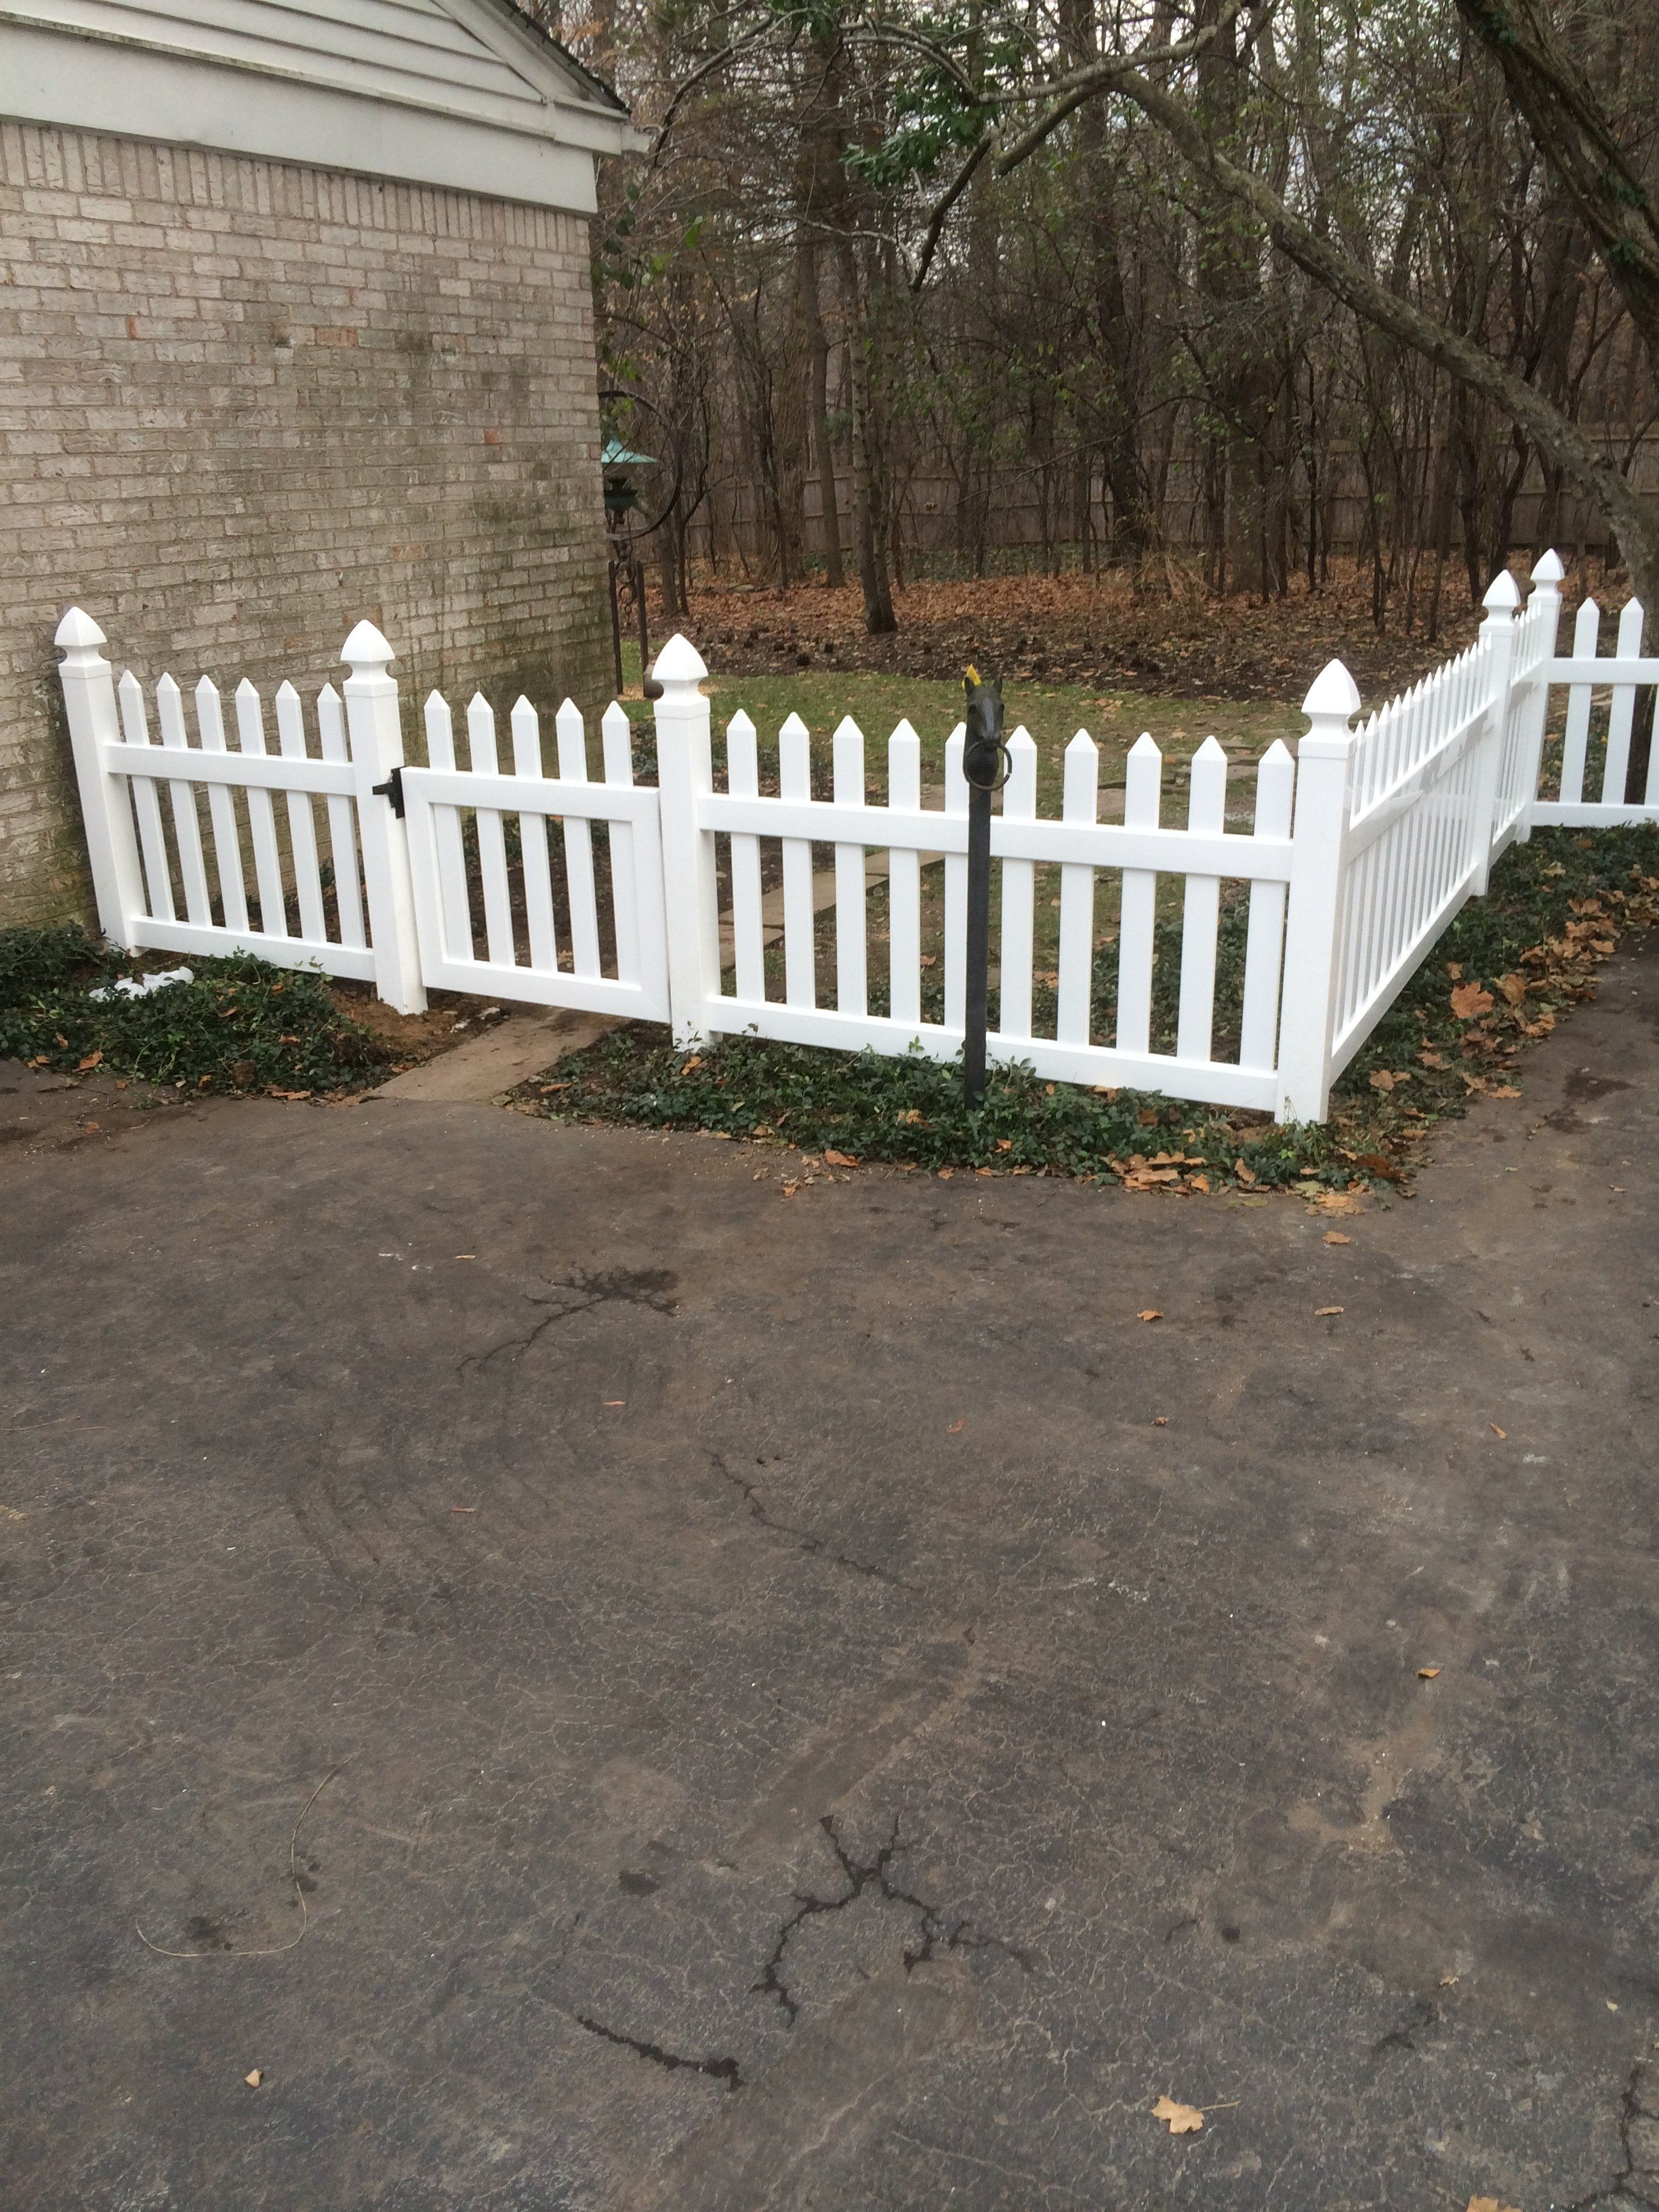 Gallery Pvc Wrought Iron Fence Gallery Pvc Wrought Iron